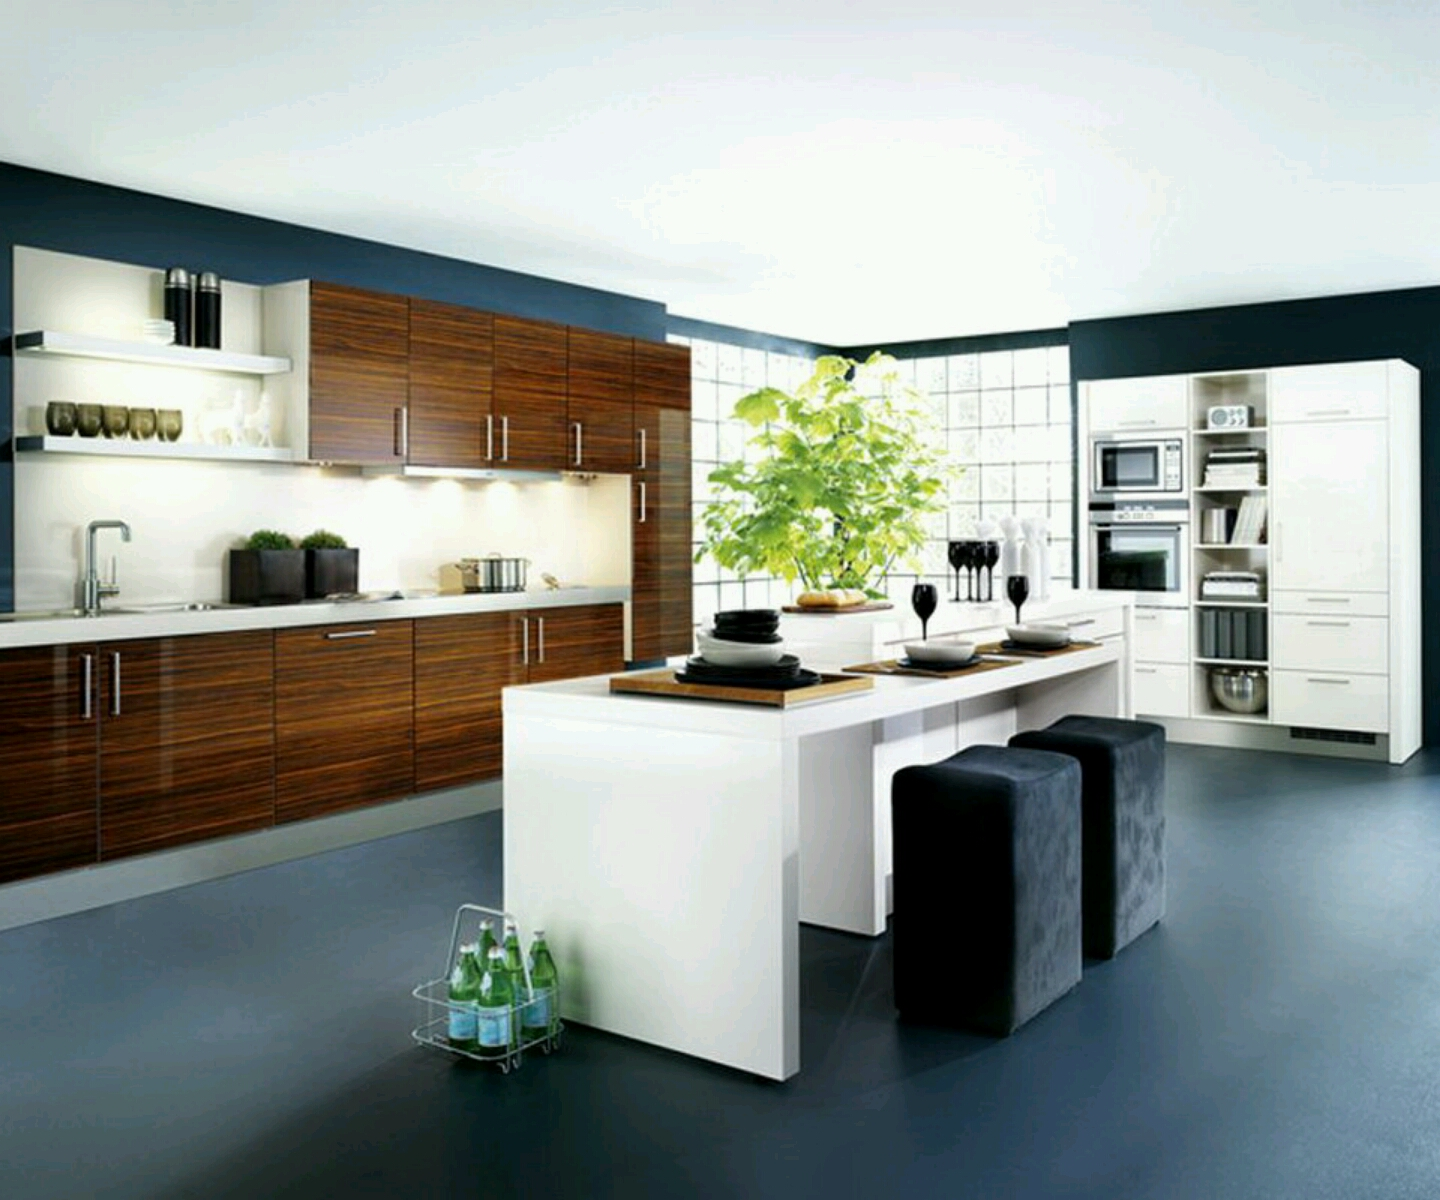 New home designs latest kitchen cabinets designs modern for Latest kitchen designs